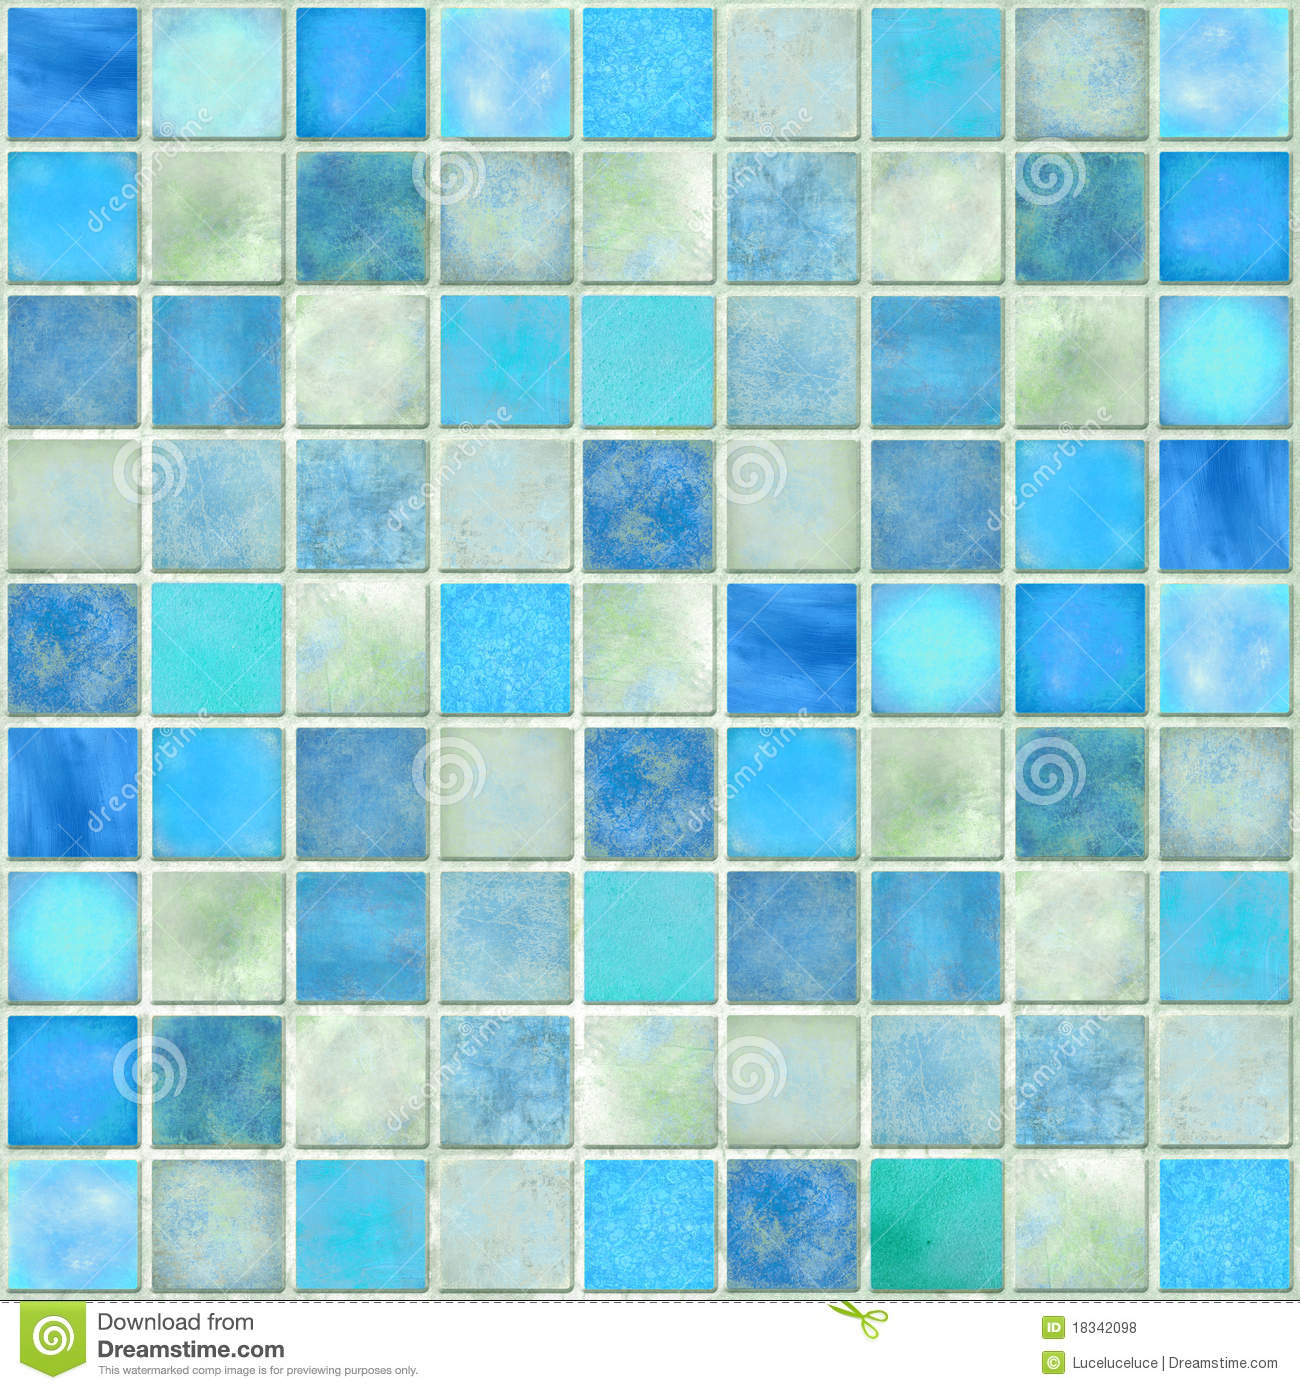 Blue tile mosaic royalty free stock photos image 18342098 Bright blue tile